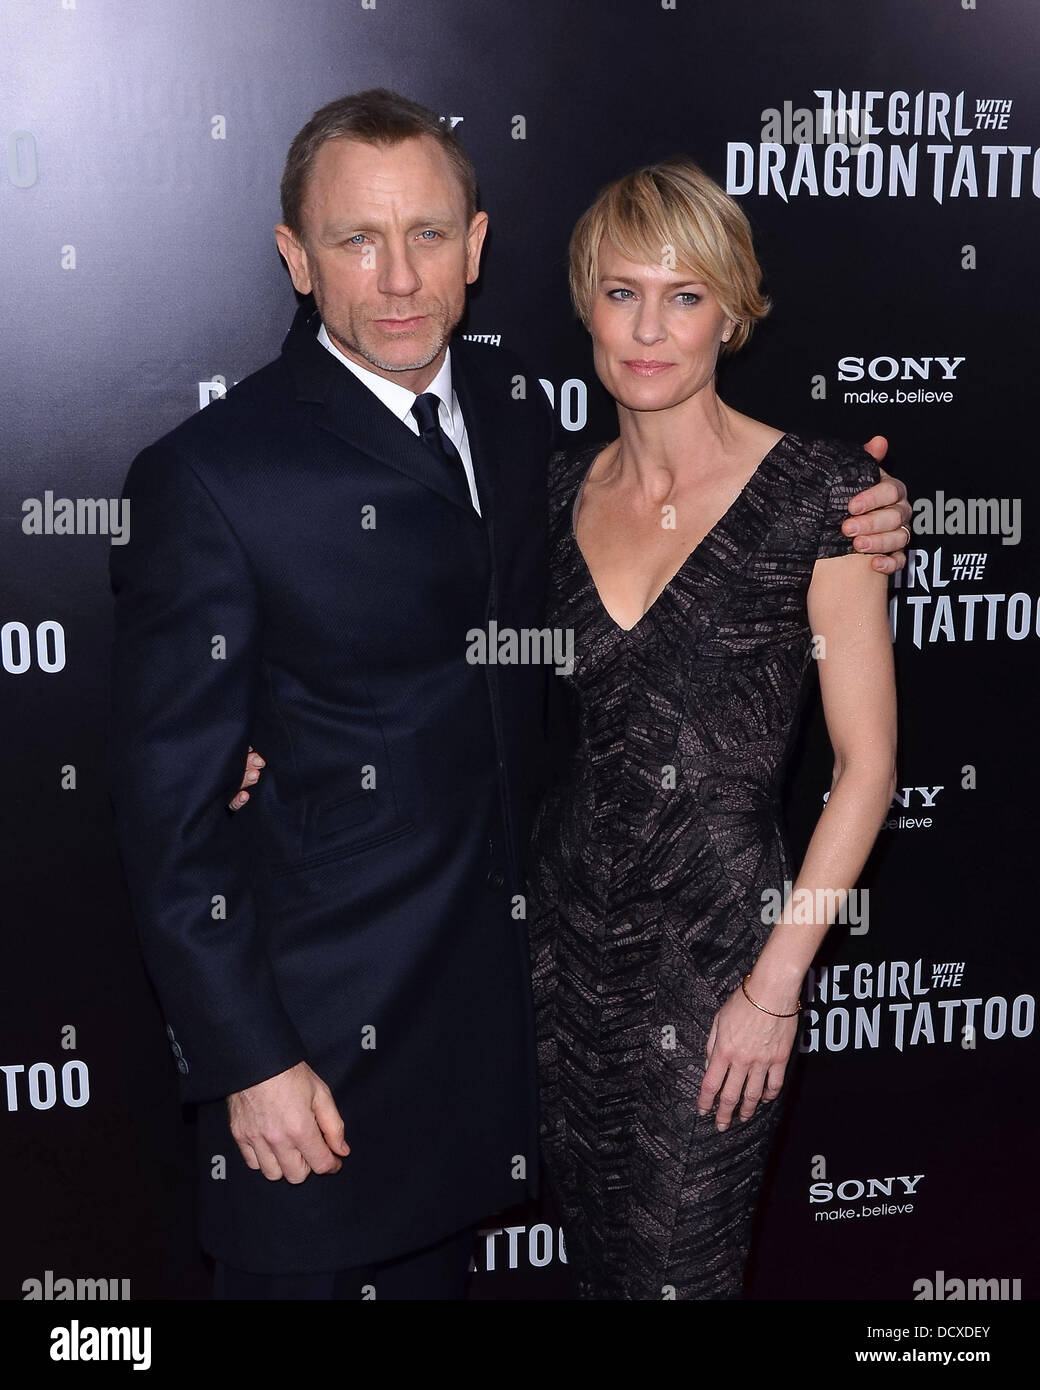 Robin Wright Girl With Dragon Tattoo Daniel Craig, R...